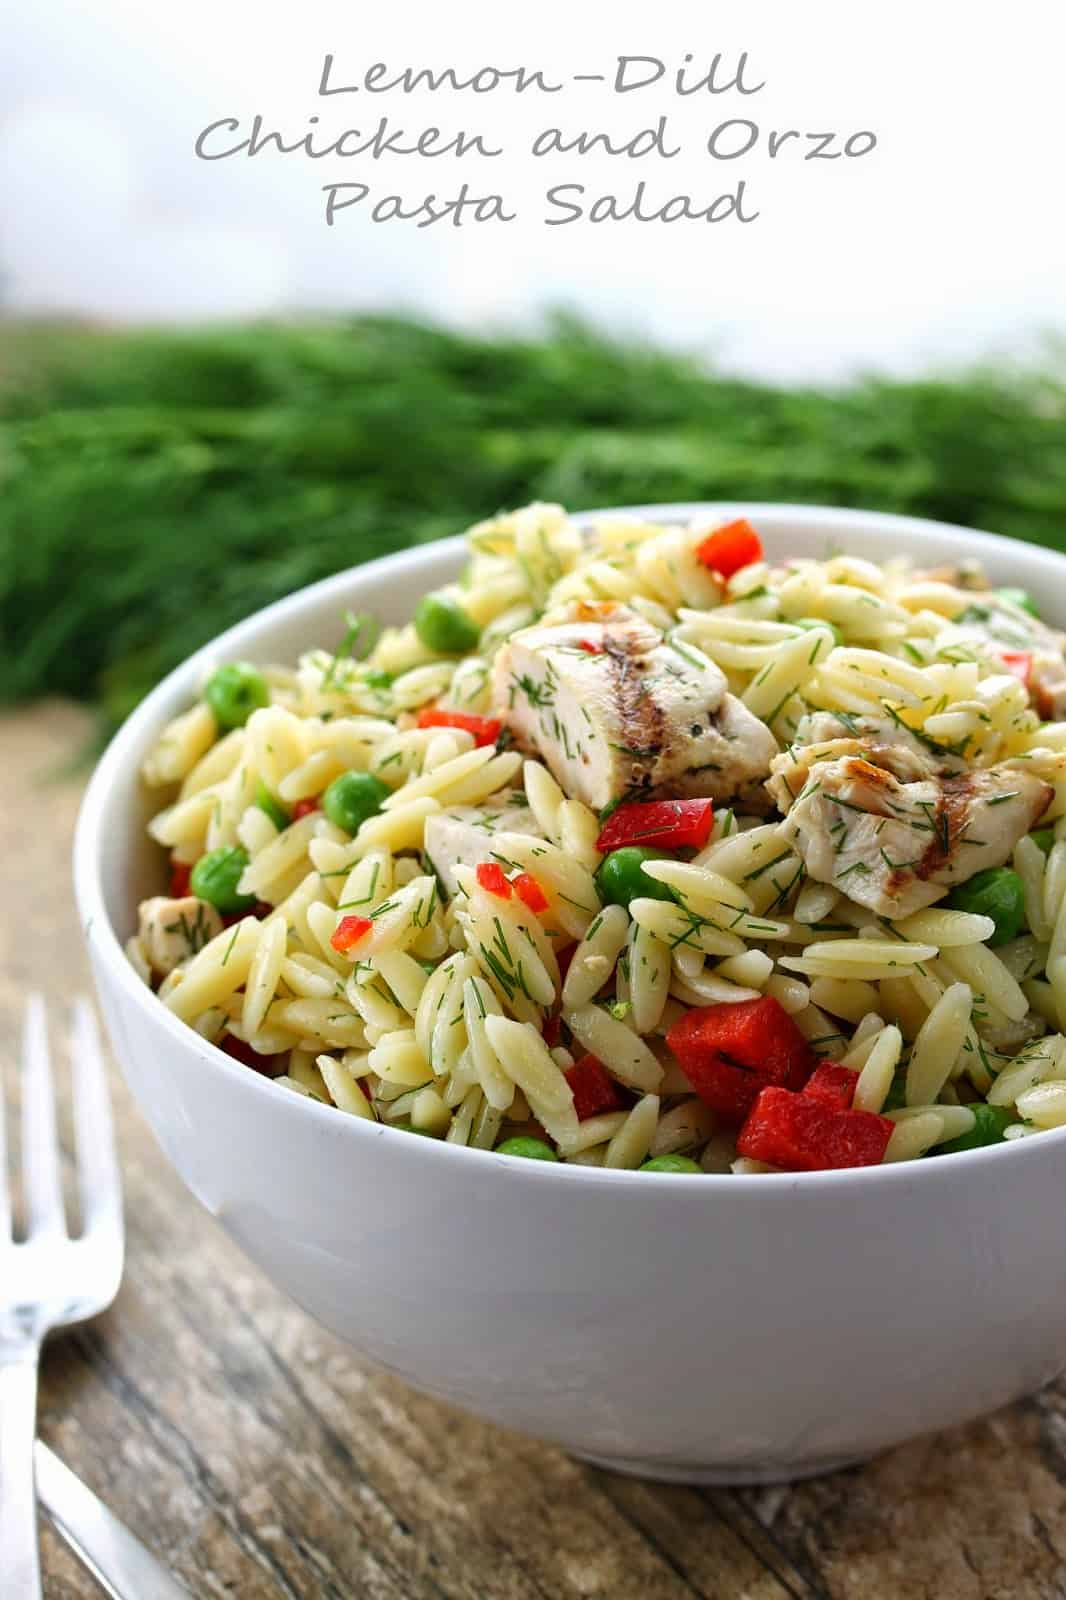 Lemon dill chicken and orzo pasta salad in a white bowl